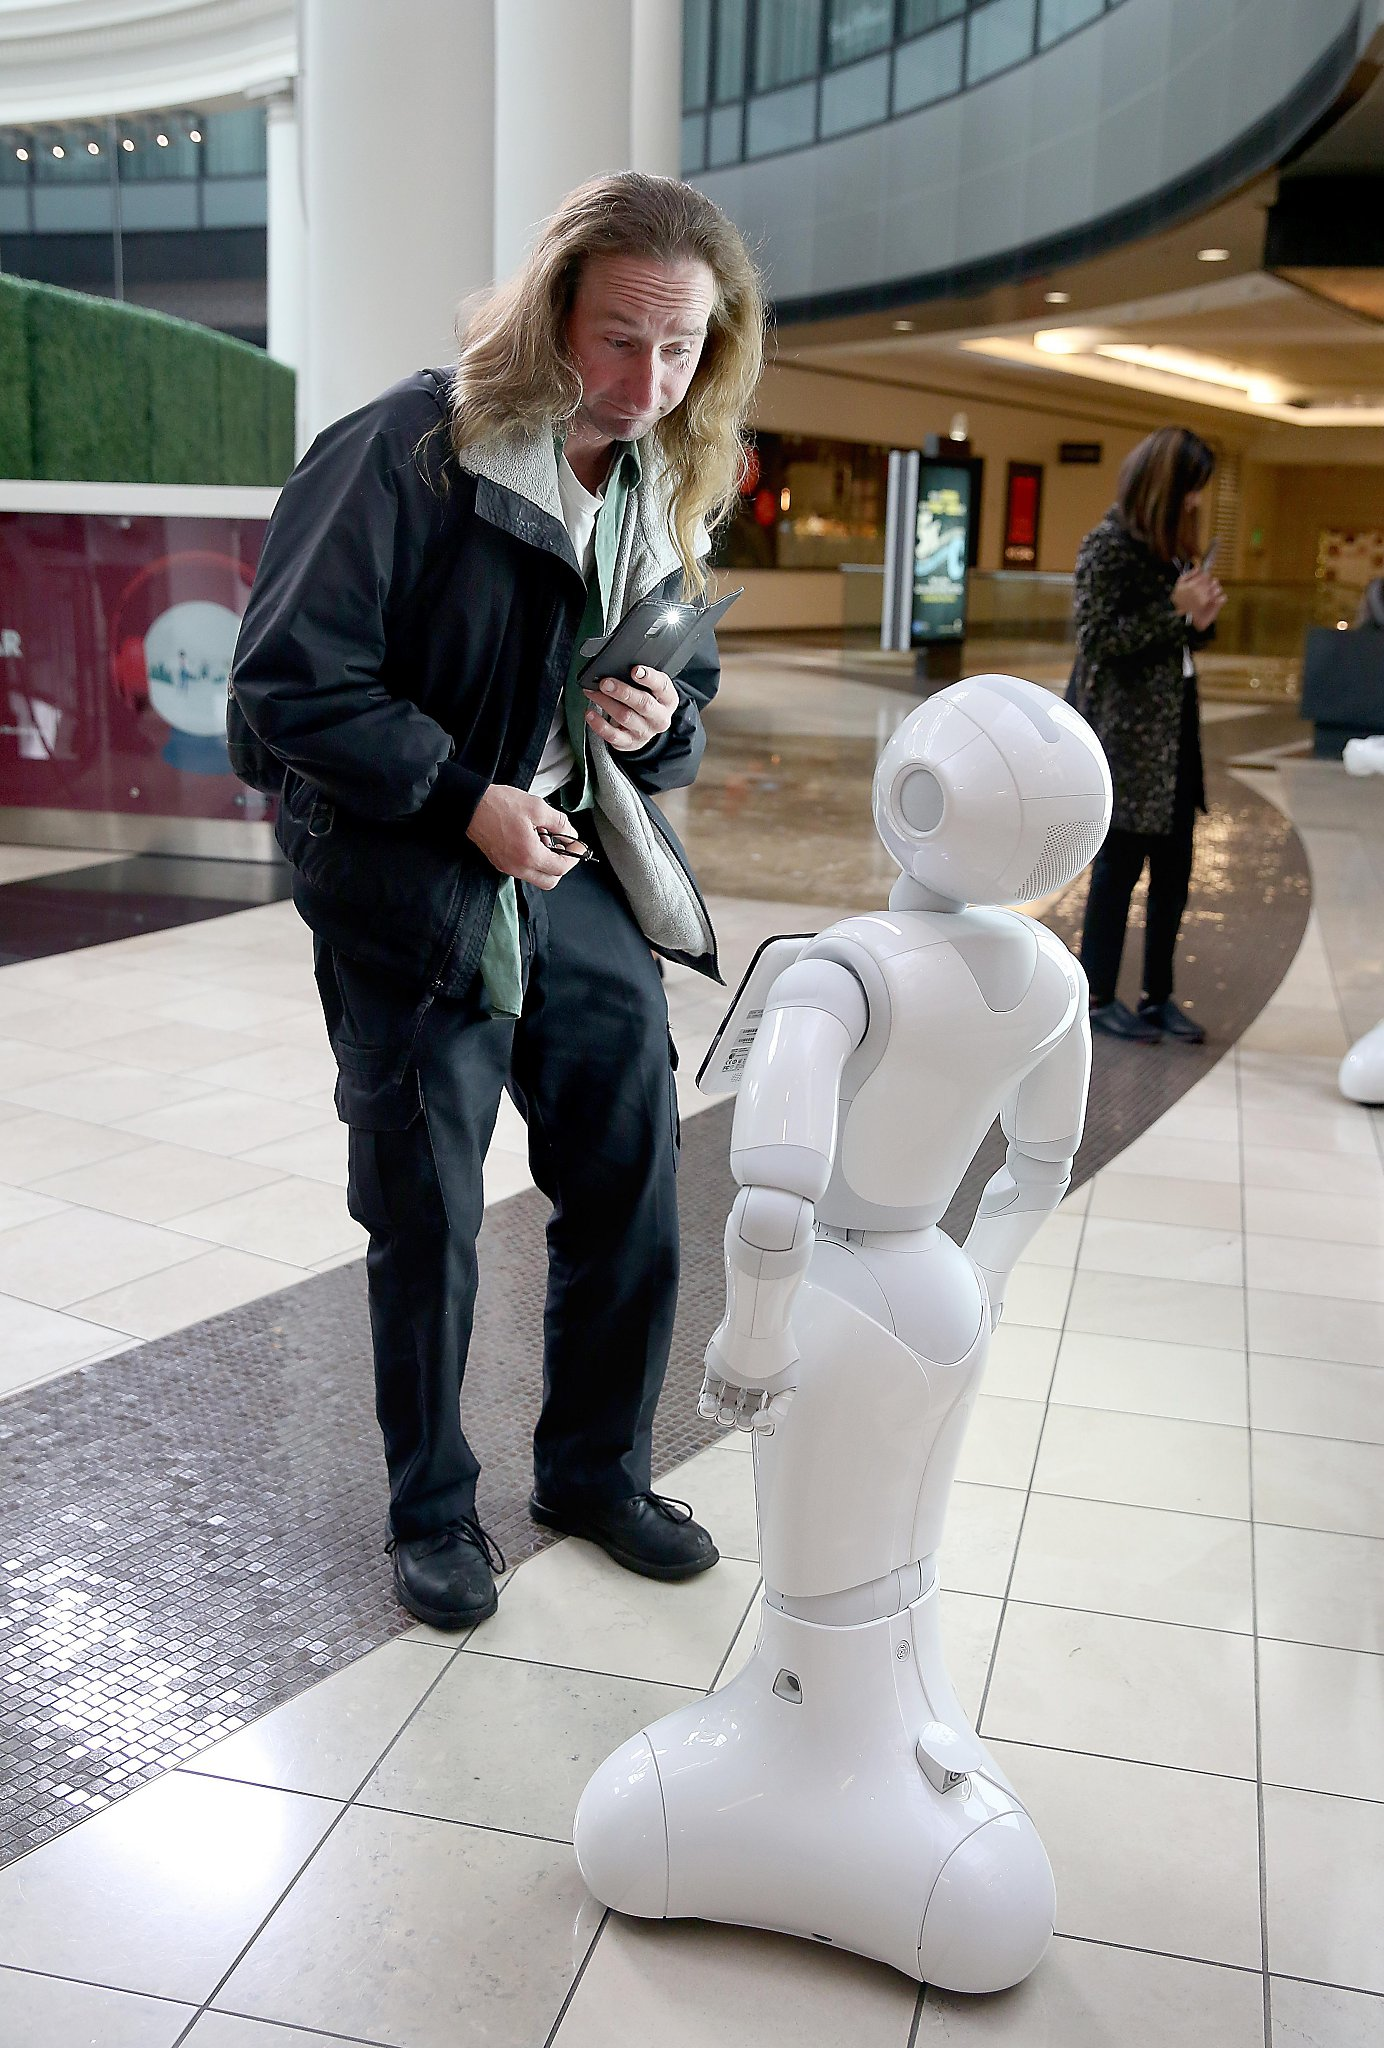 Robots greet westfield mall shoppers in san francisco san jose robots greet westfield mall shoppers in san francisco san jose times union kristyandbryce Image collections